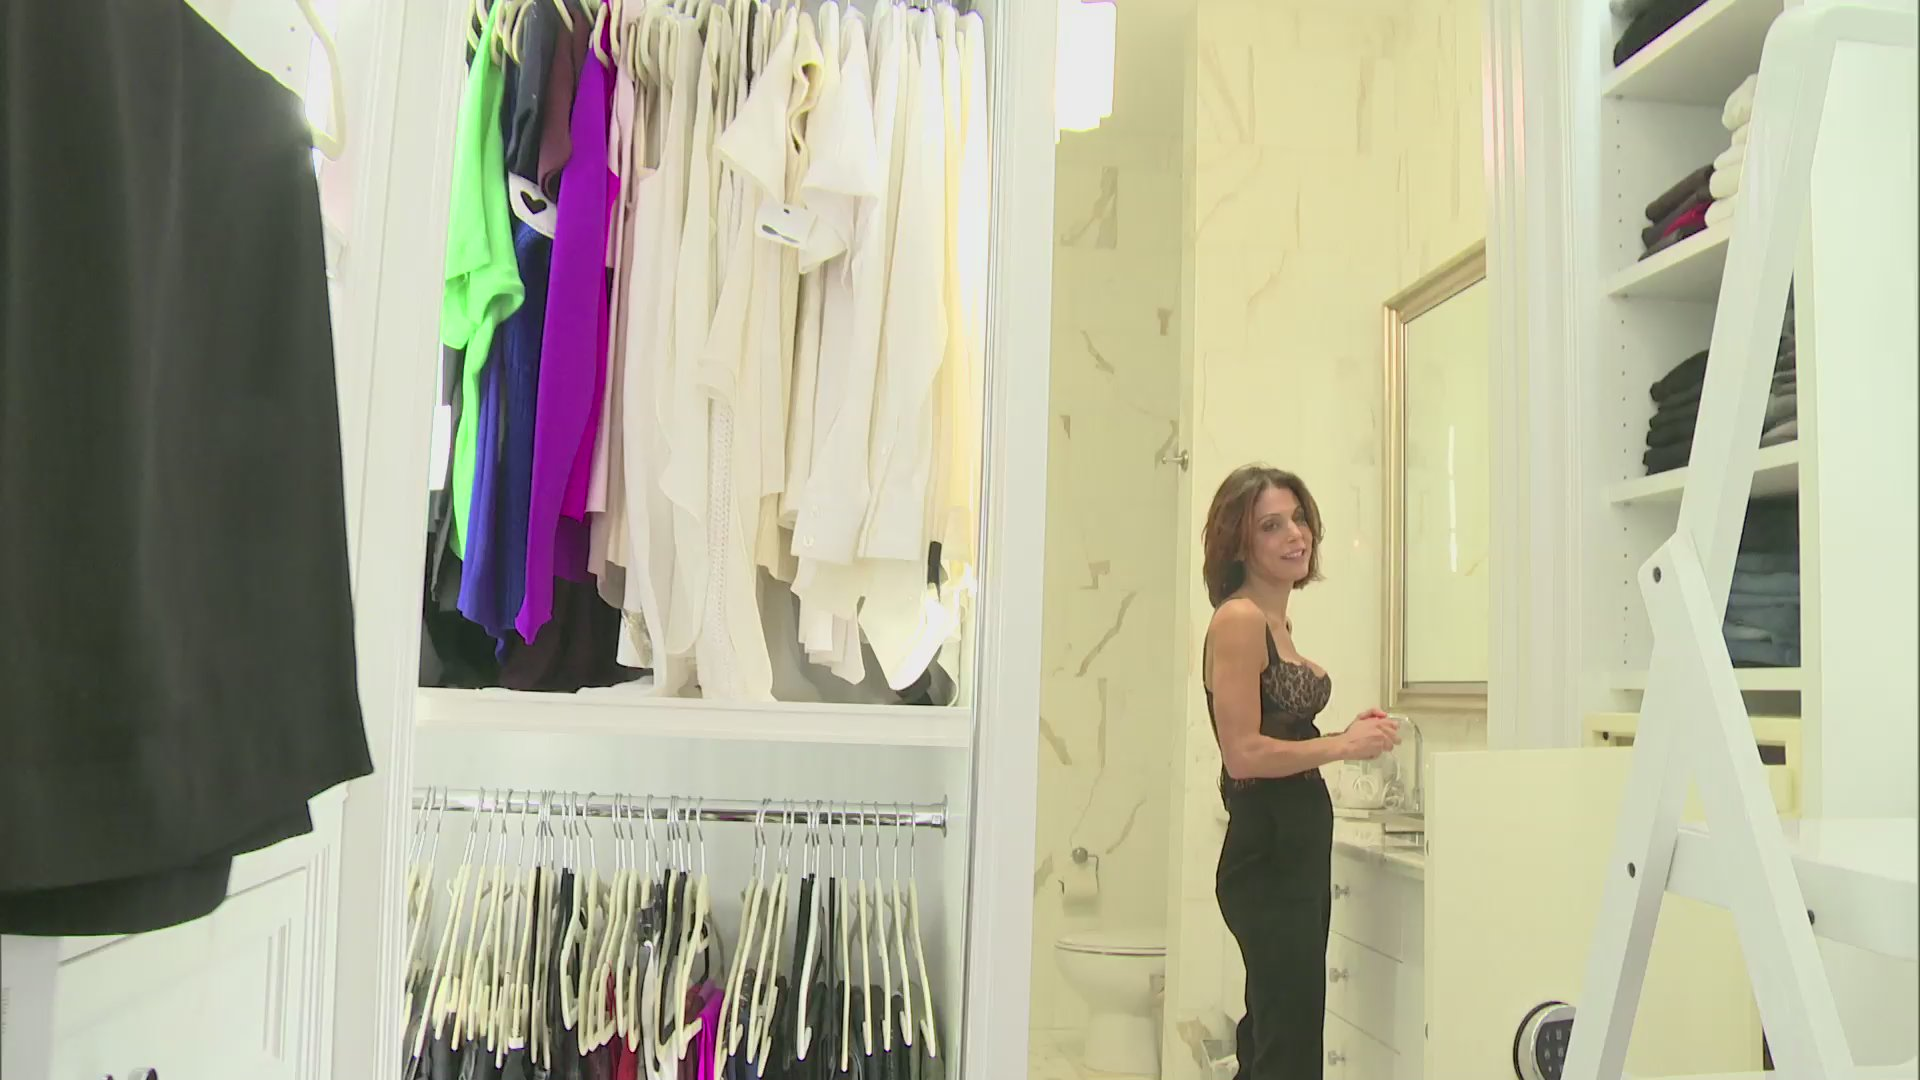 Unseen Moment: Bethenny Gets Ready for a Date